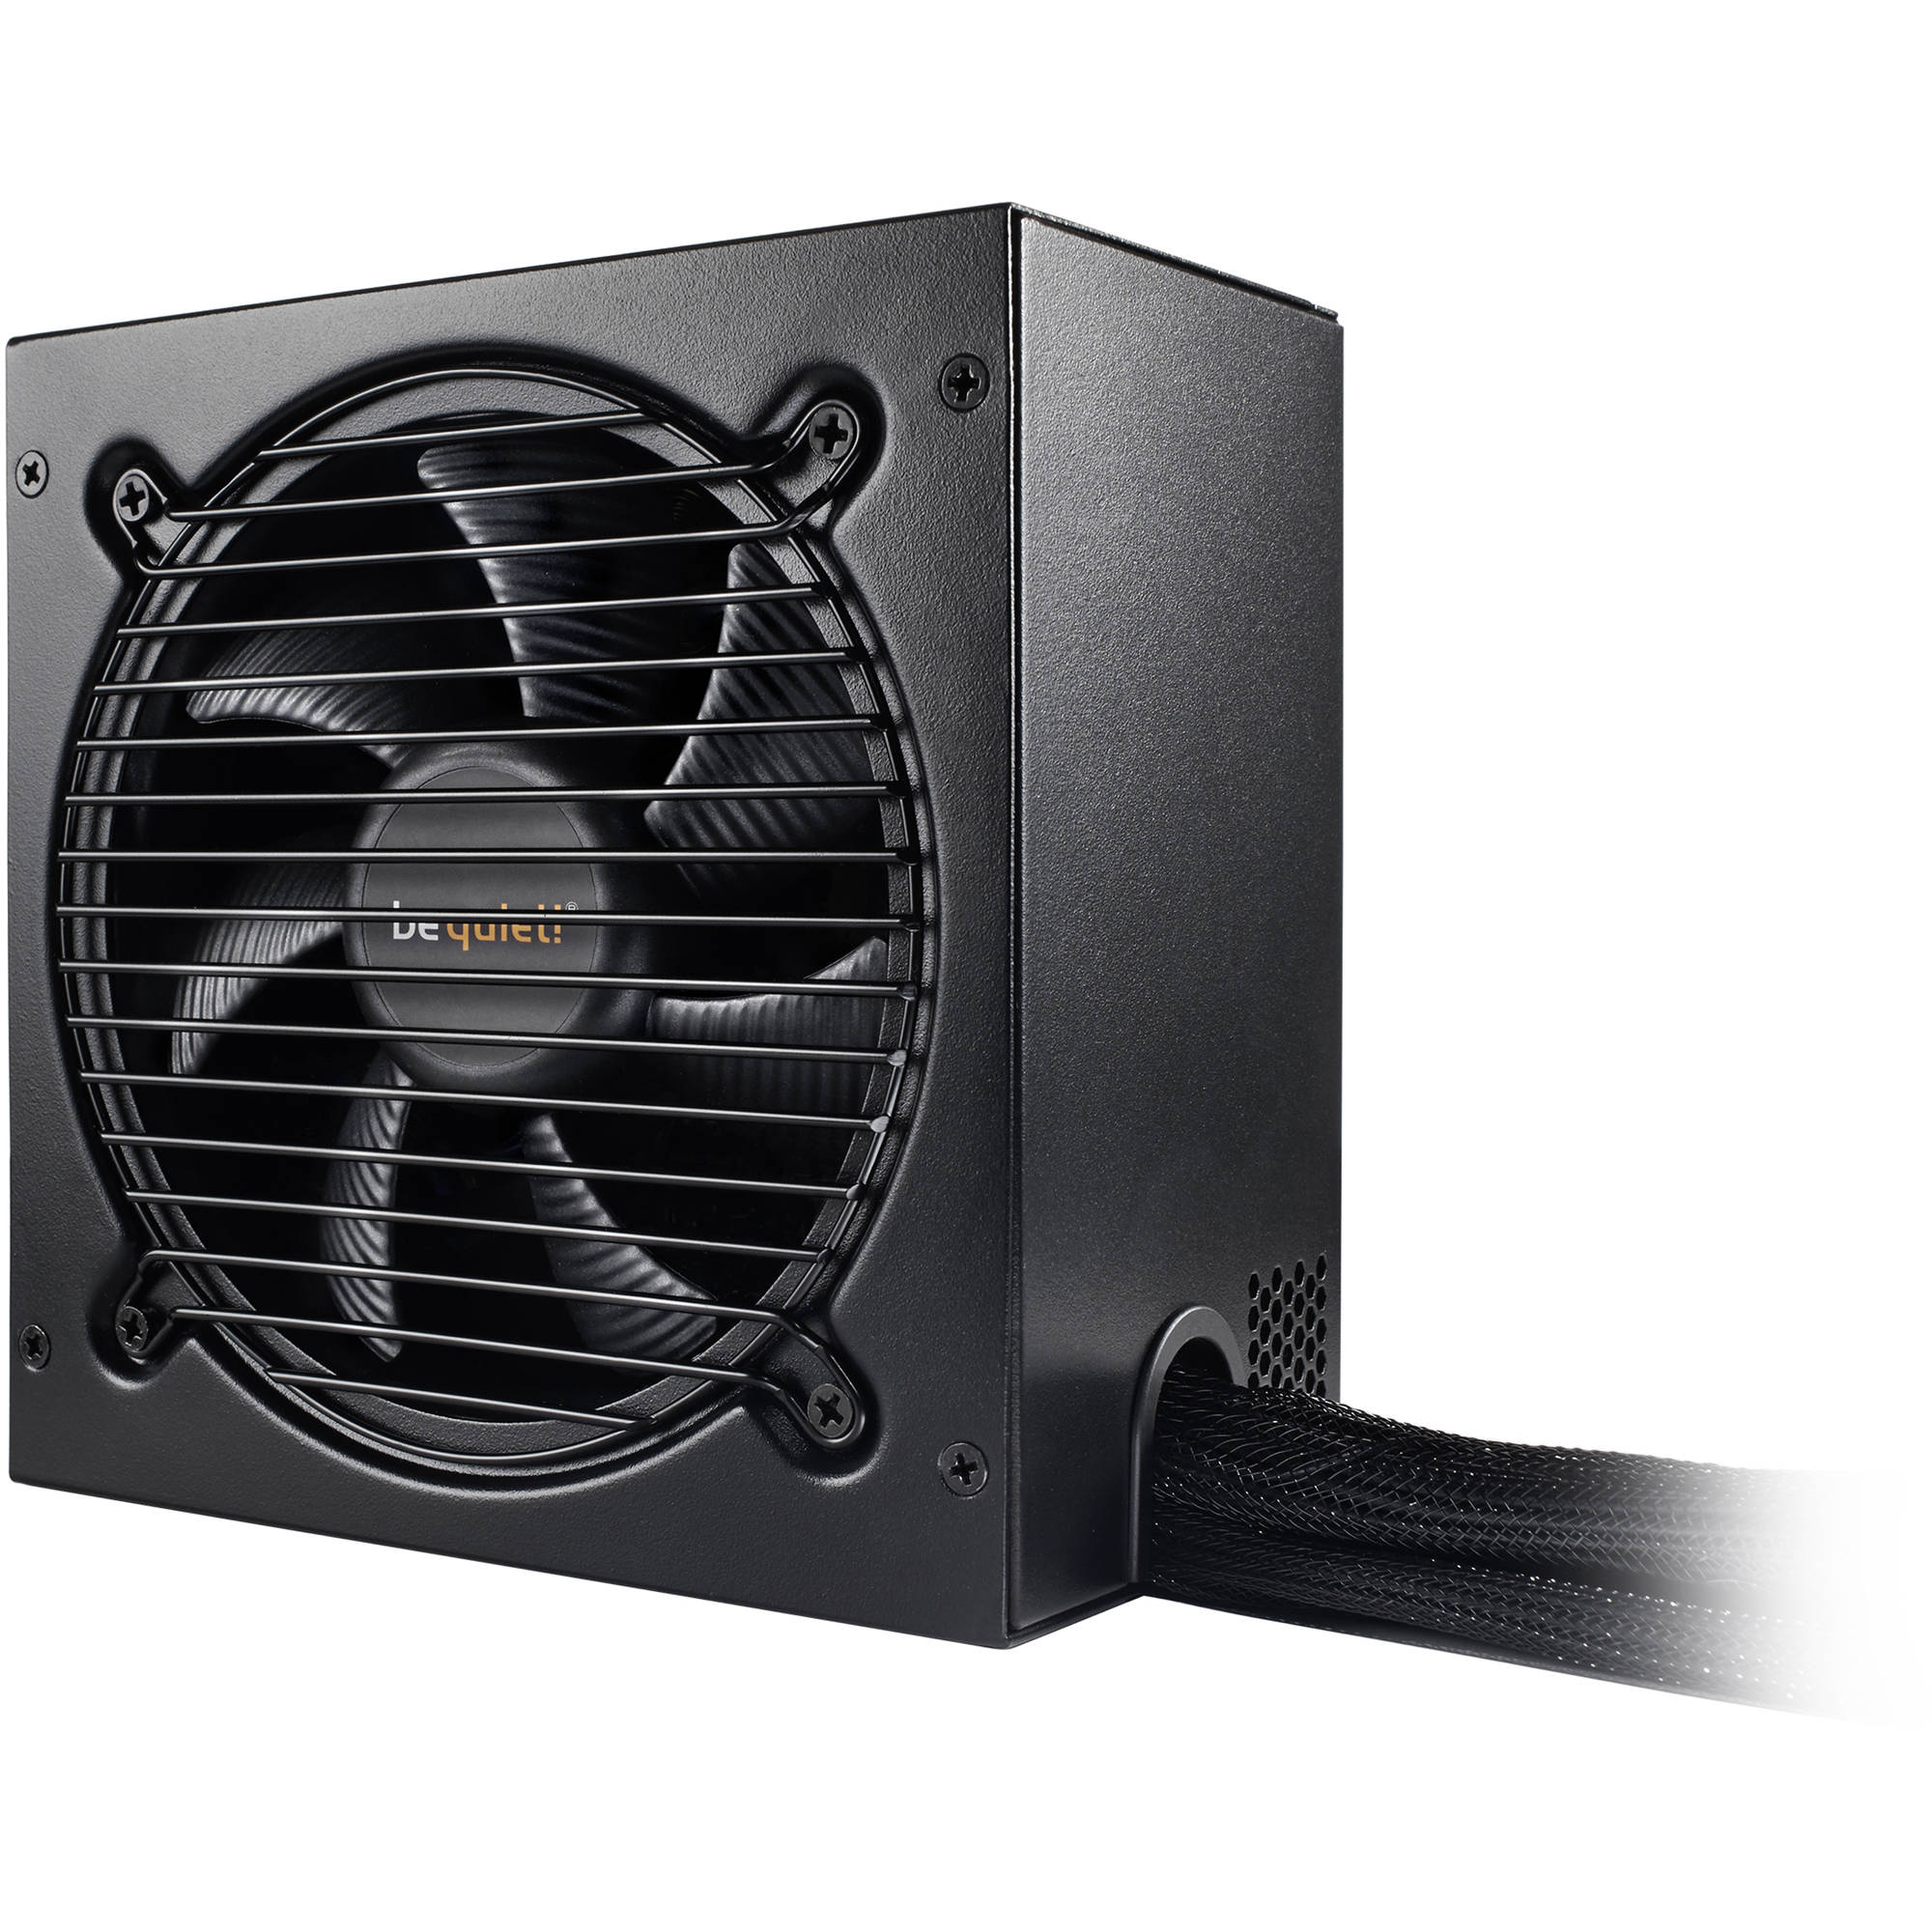 be quiet pure power 10 500w 80 plus silver power supply bn673